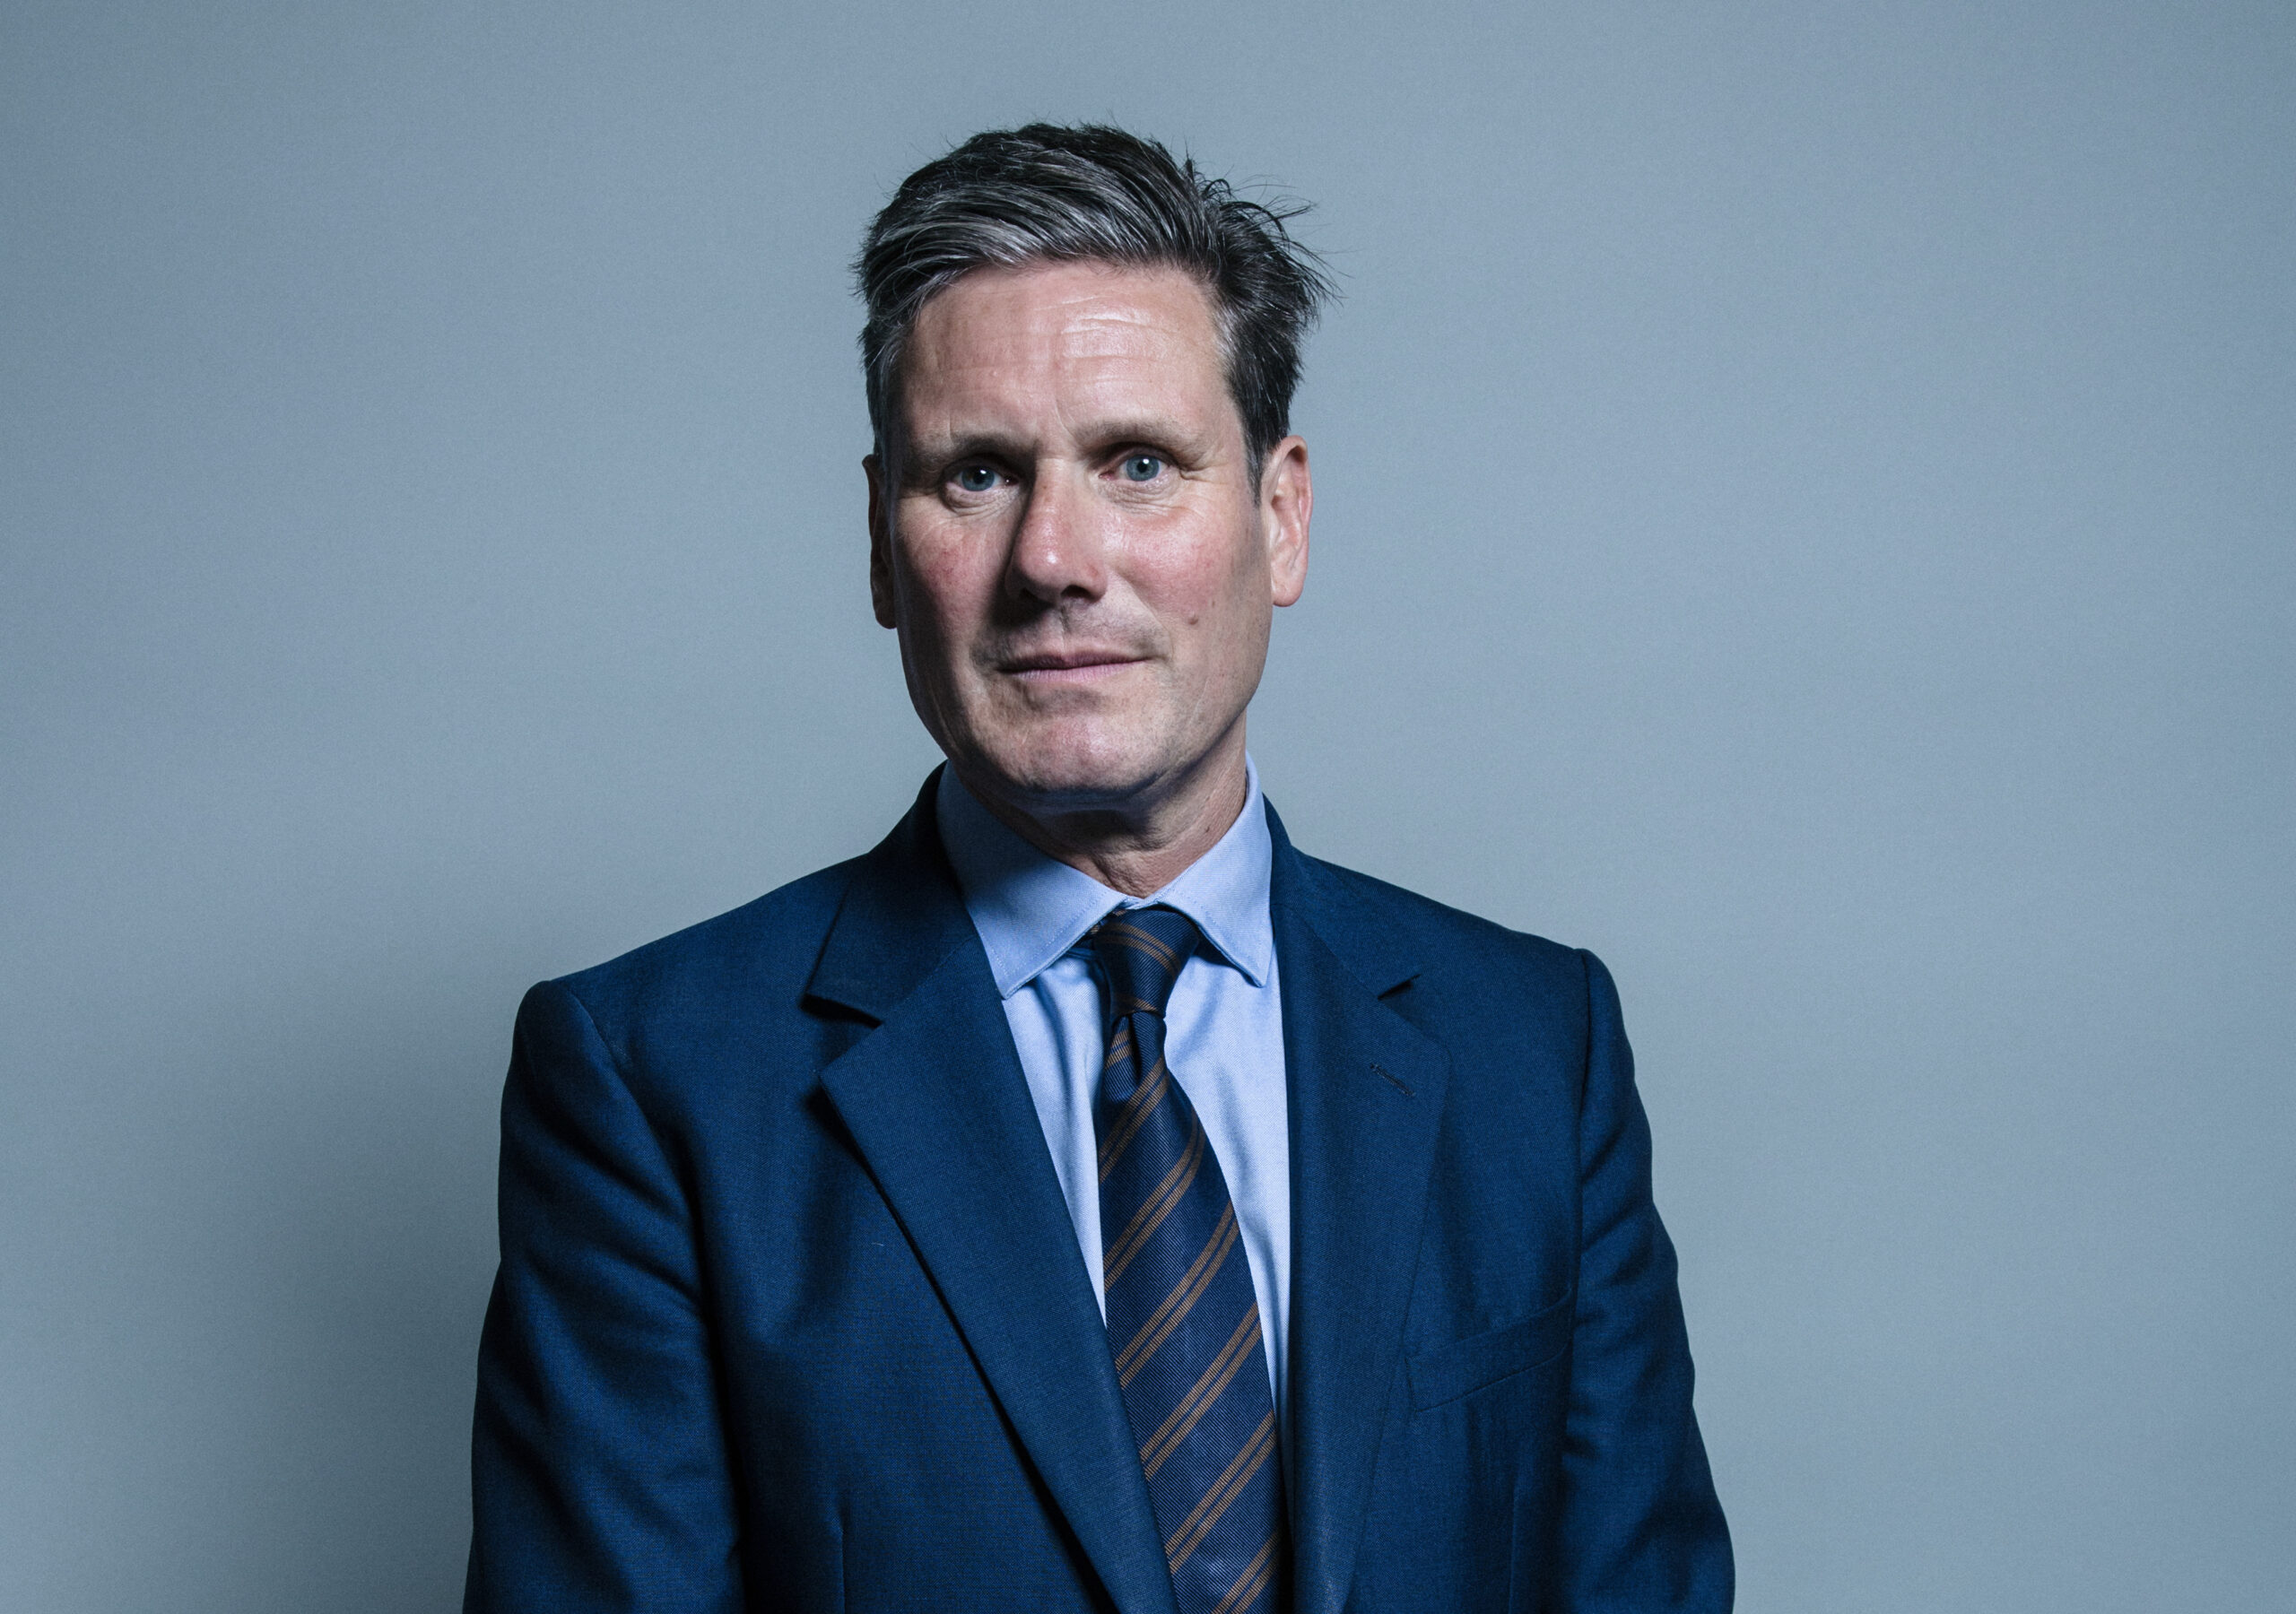 'Is Keir Starmer's position finally secure?' – Reflections on a conversation with the leader of the Yorkshire Party